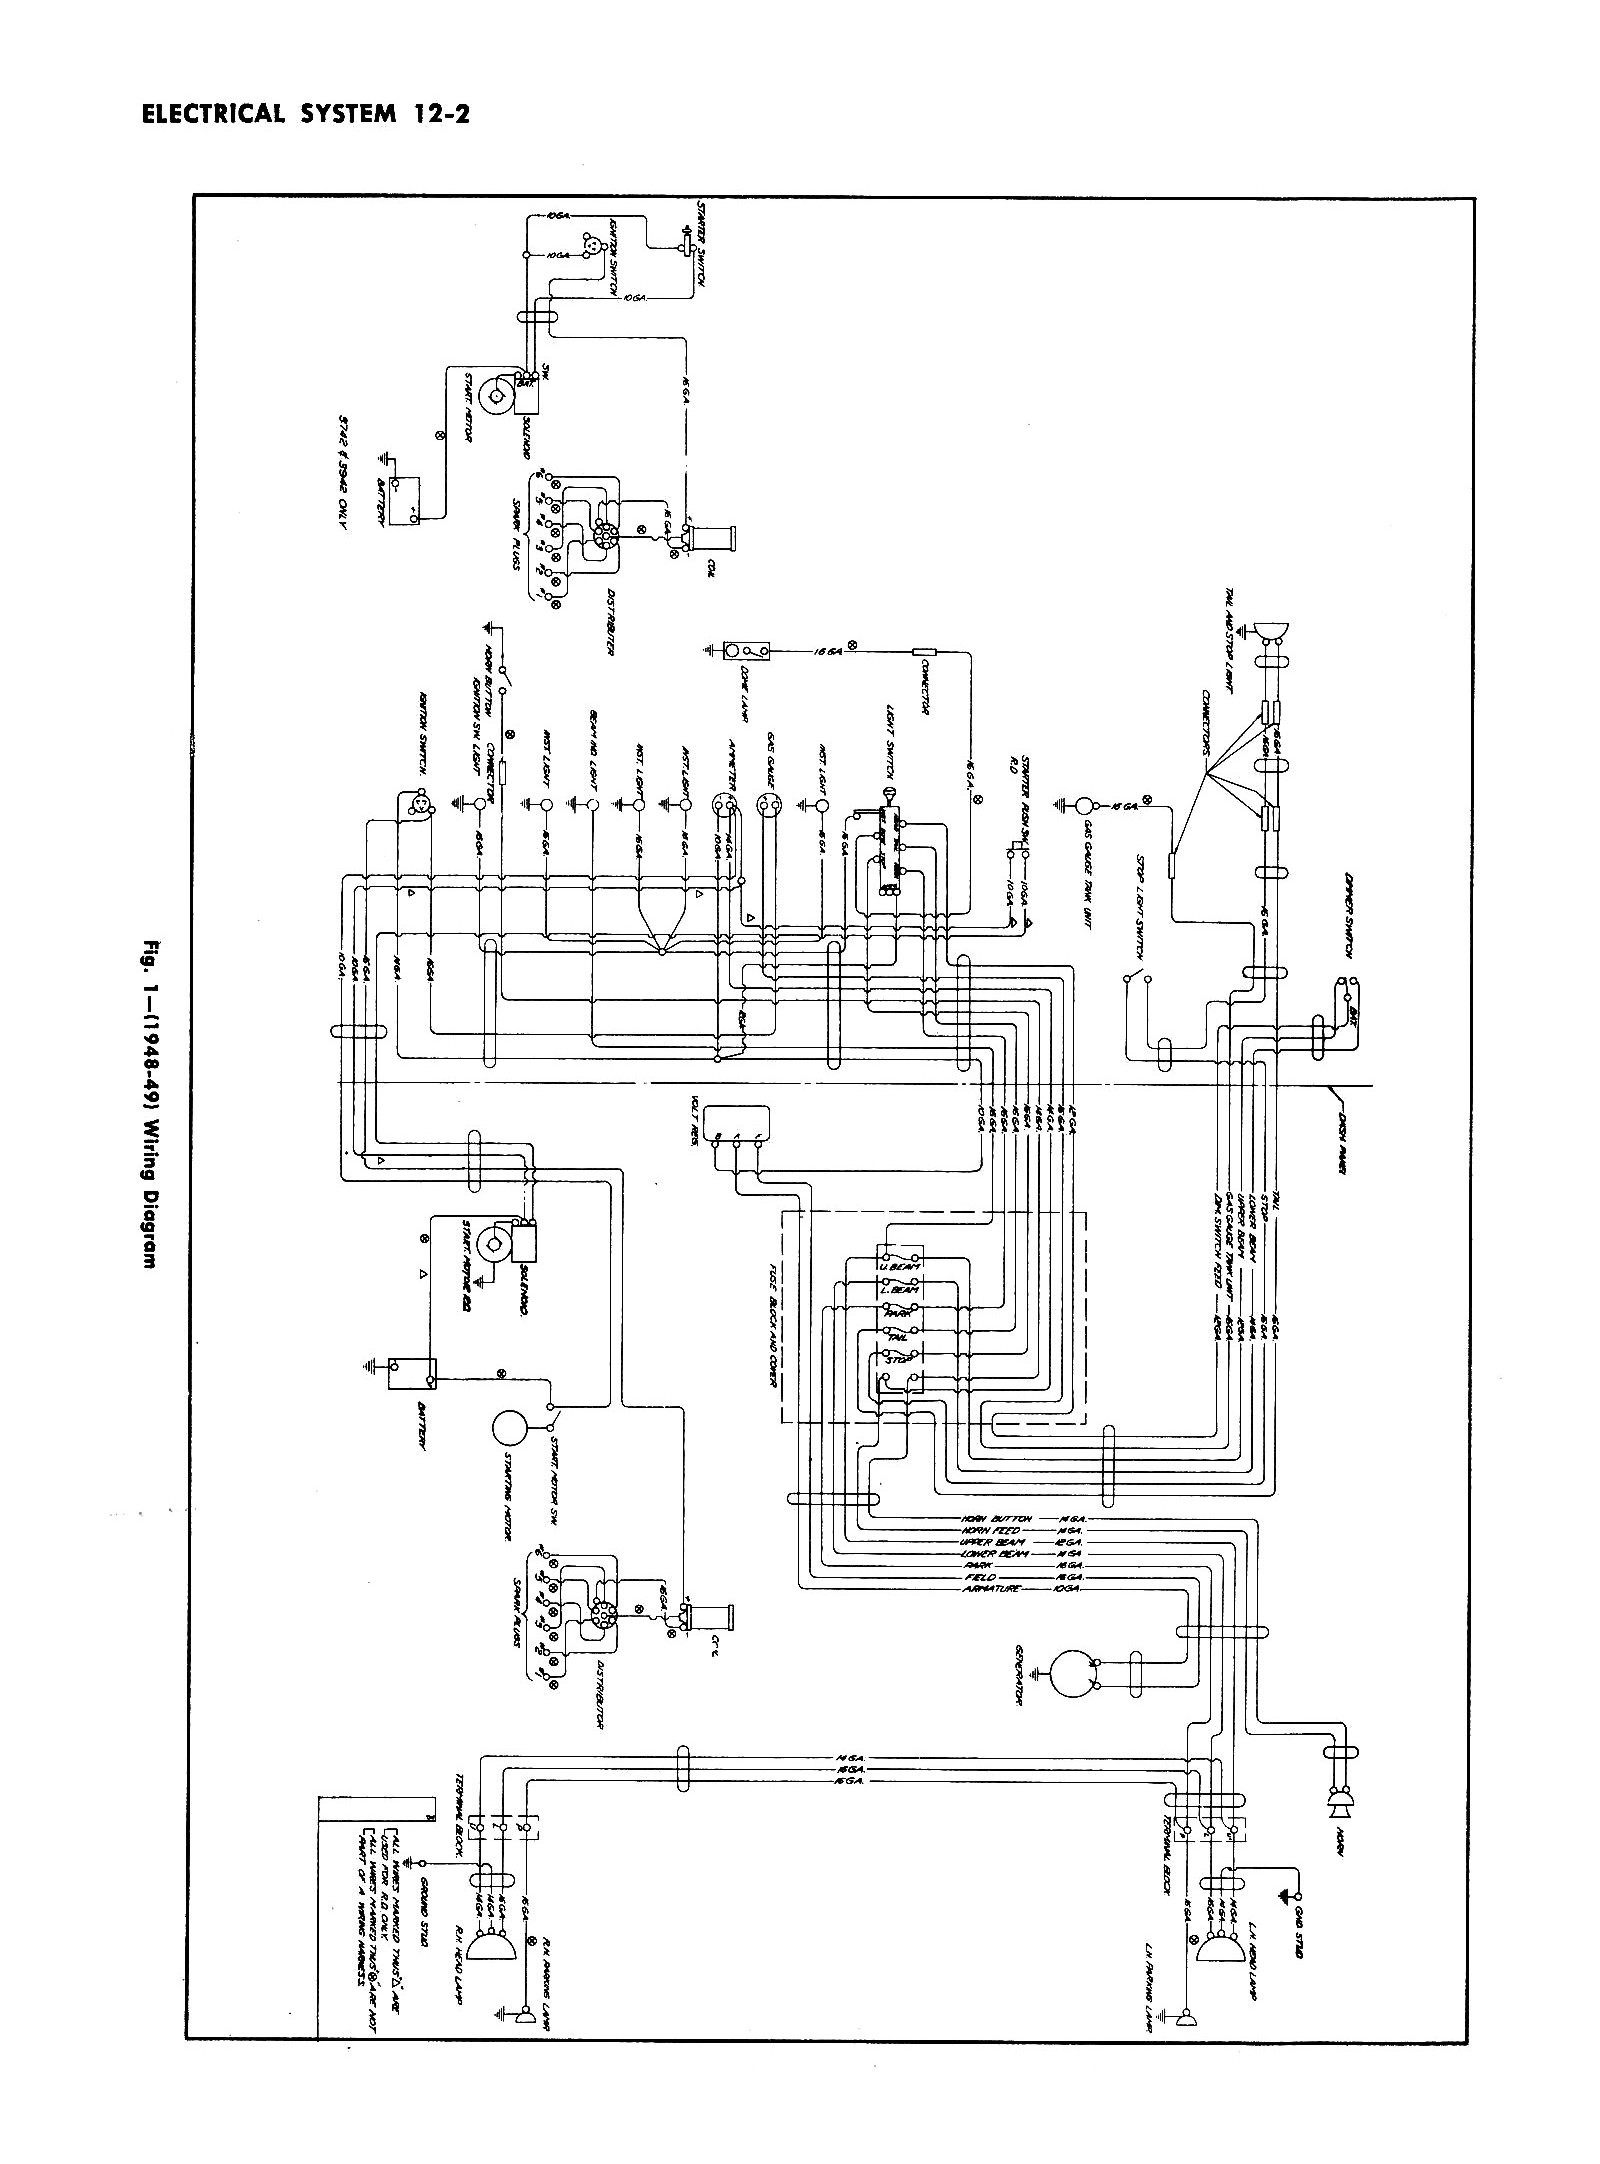 Headlight Wiring Schematic All Kind Of Diagrams 1989 Chevy Diagram Impala 2010 K1500